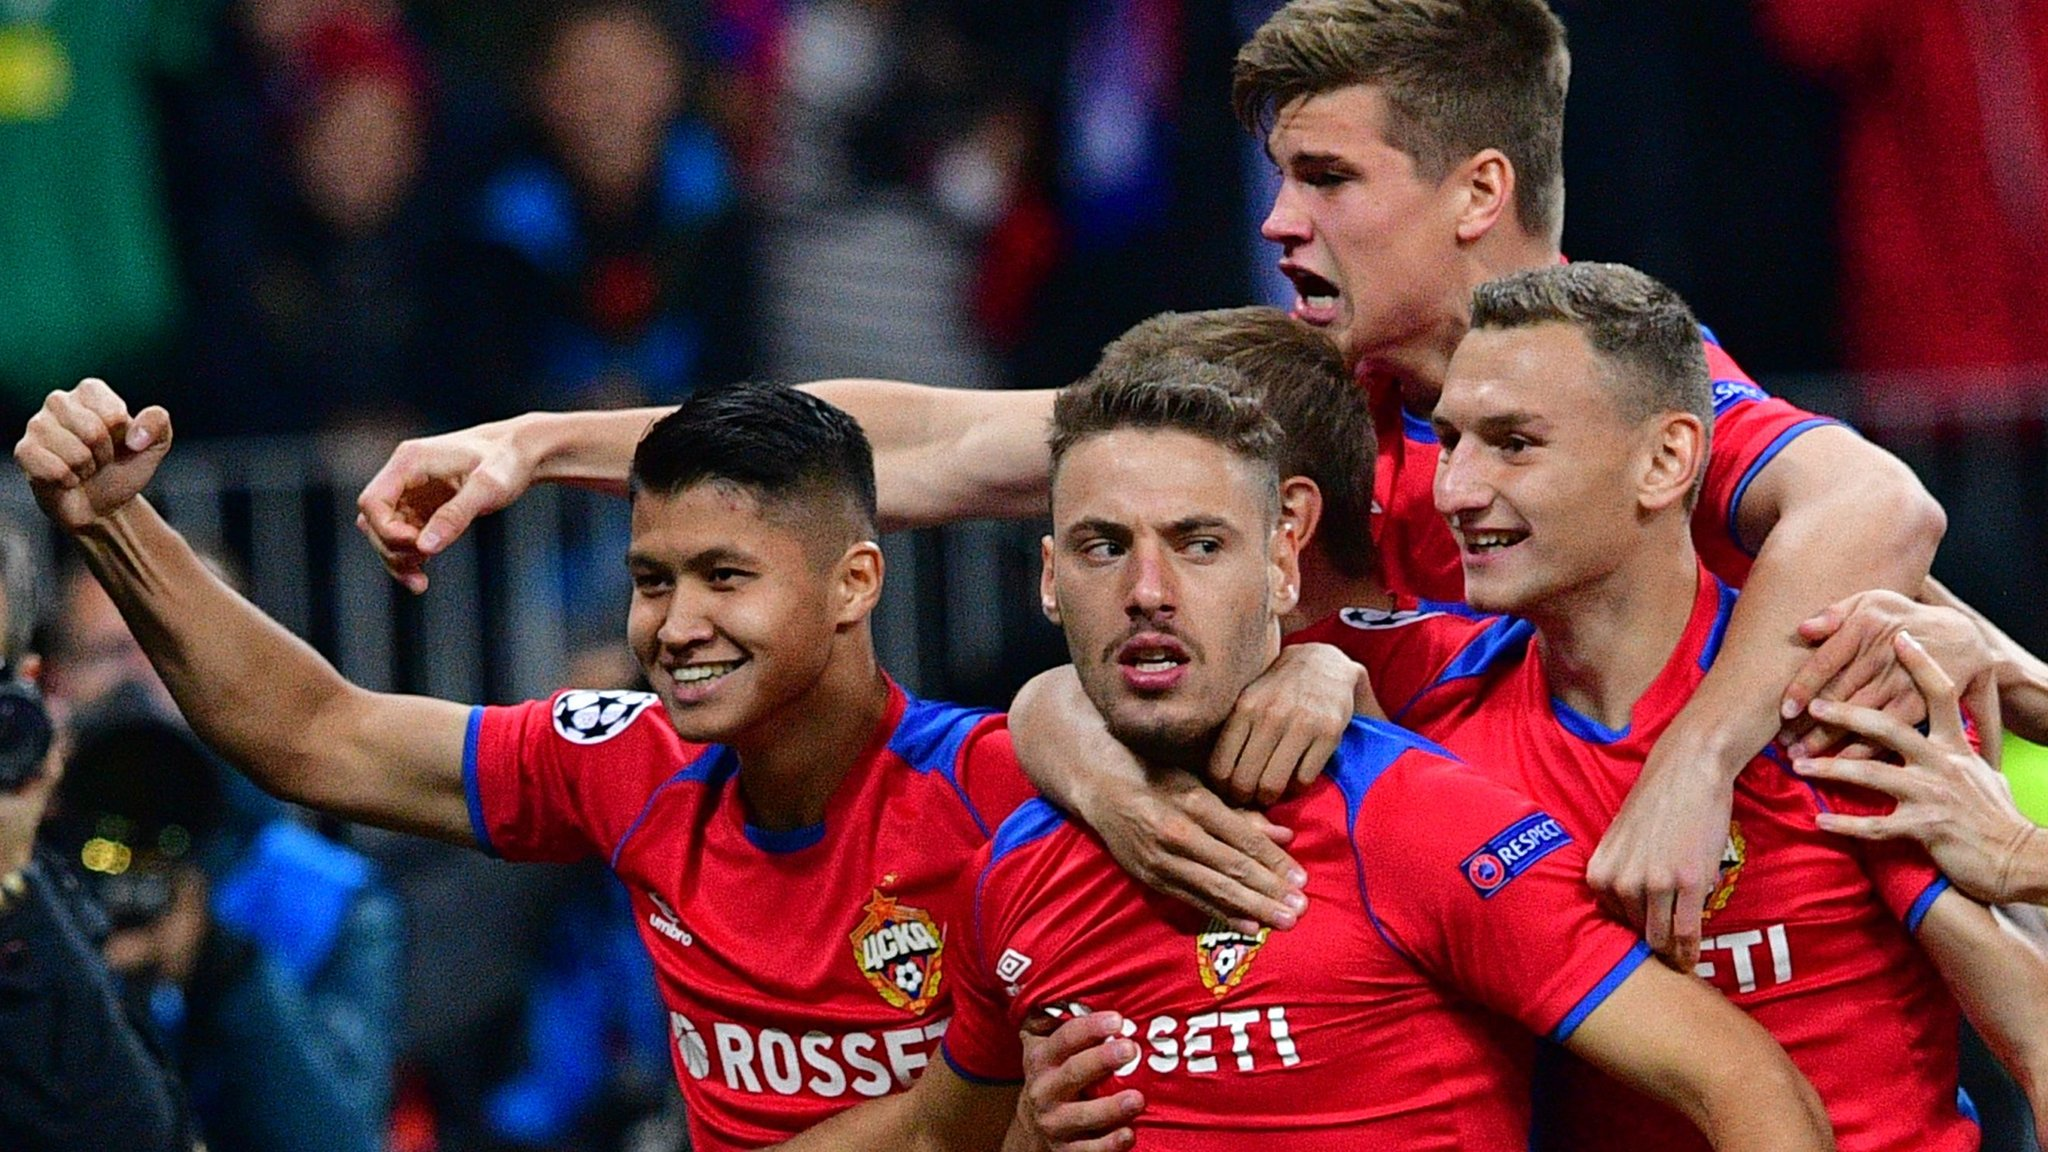 CSKA Moscow 1-0 Real Madrid: European champions beaten in Russia